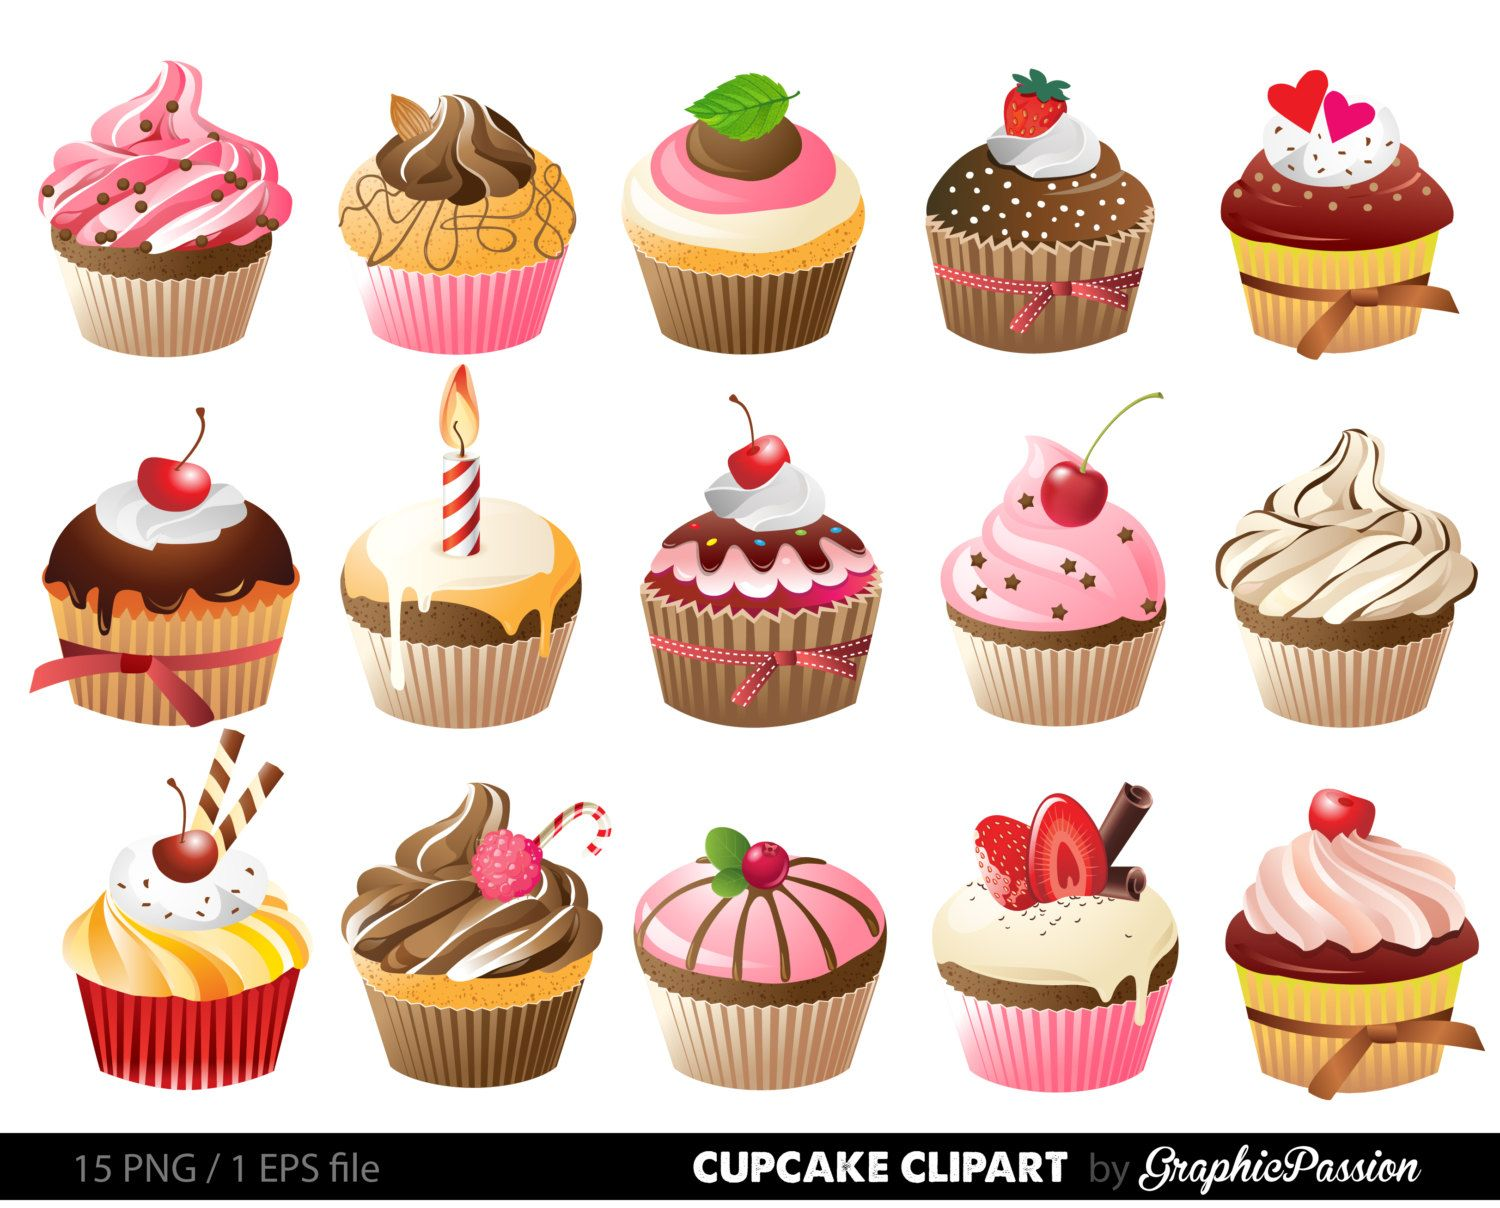 cupcakes clipart google search cupcakes pinterest. Black Bedroom Furniture Sets. Home Design Ideas